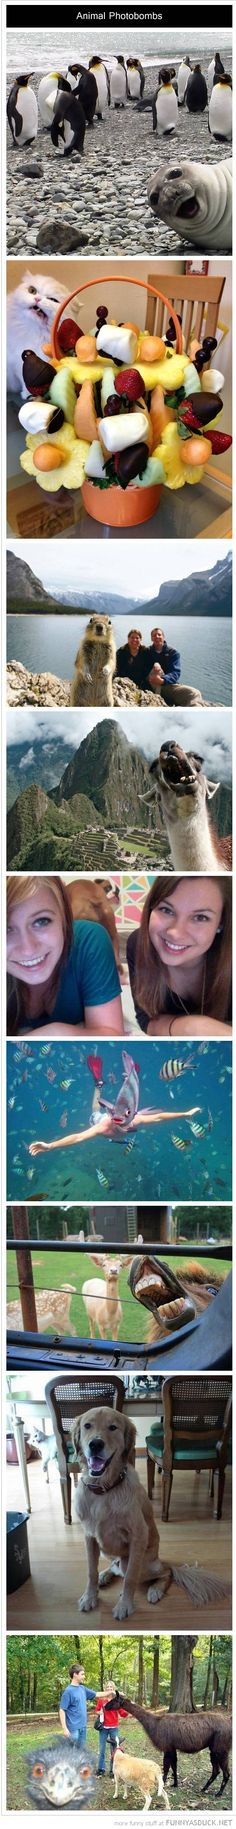 funny-animal-photobomb-compilation-pics.jpg 522×4,047 pixels